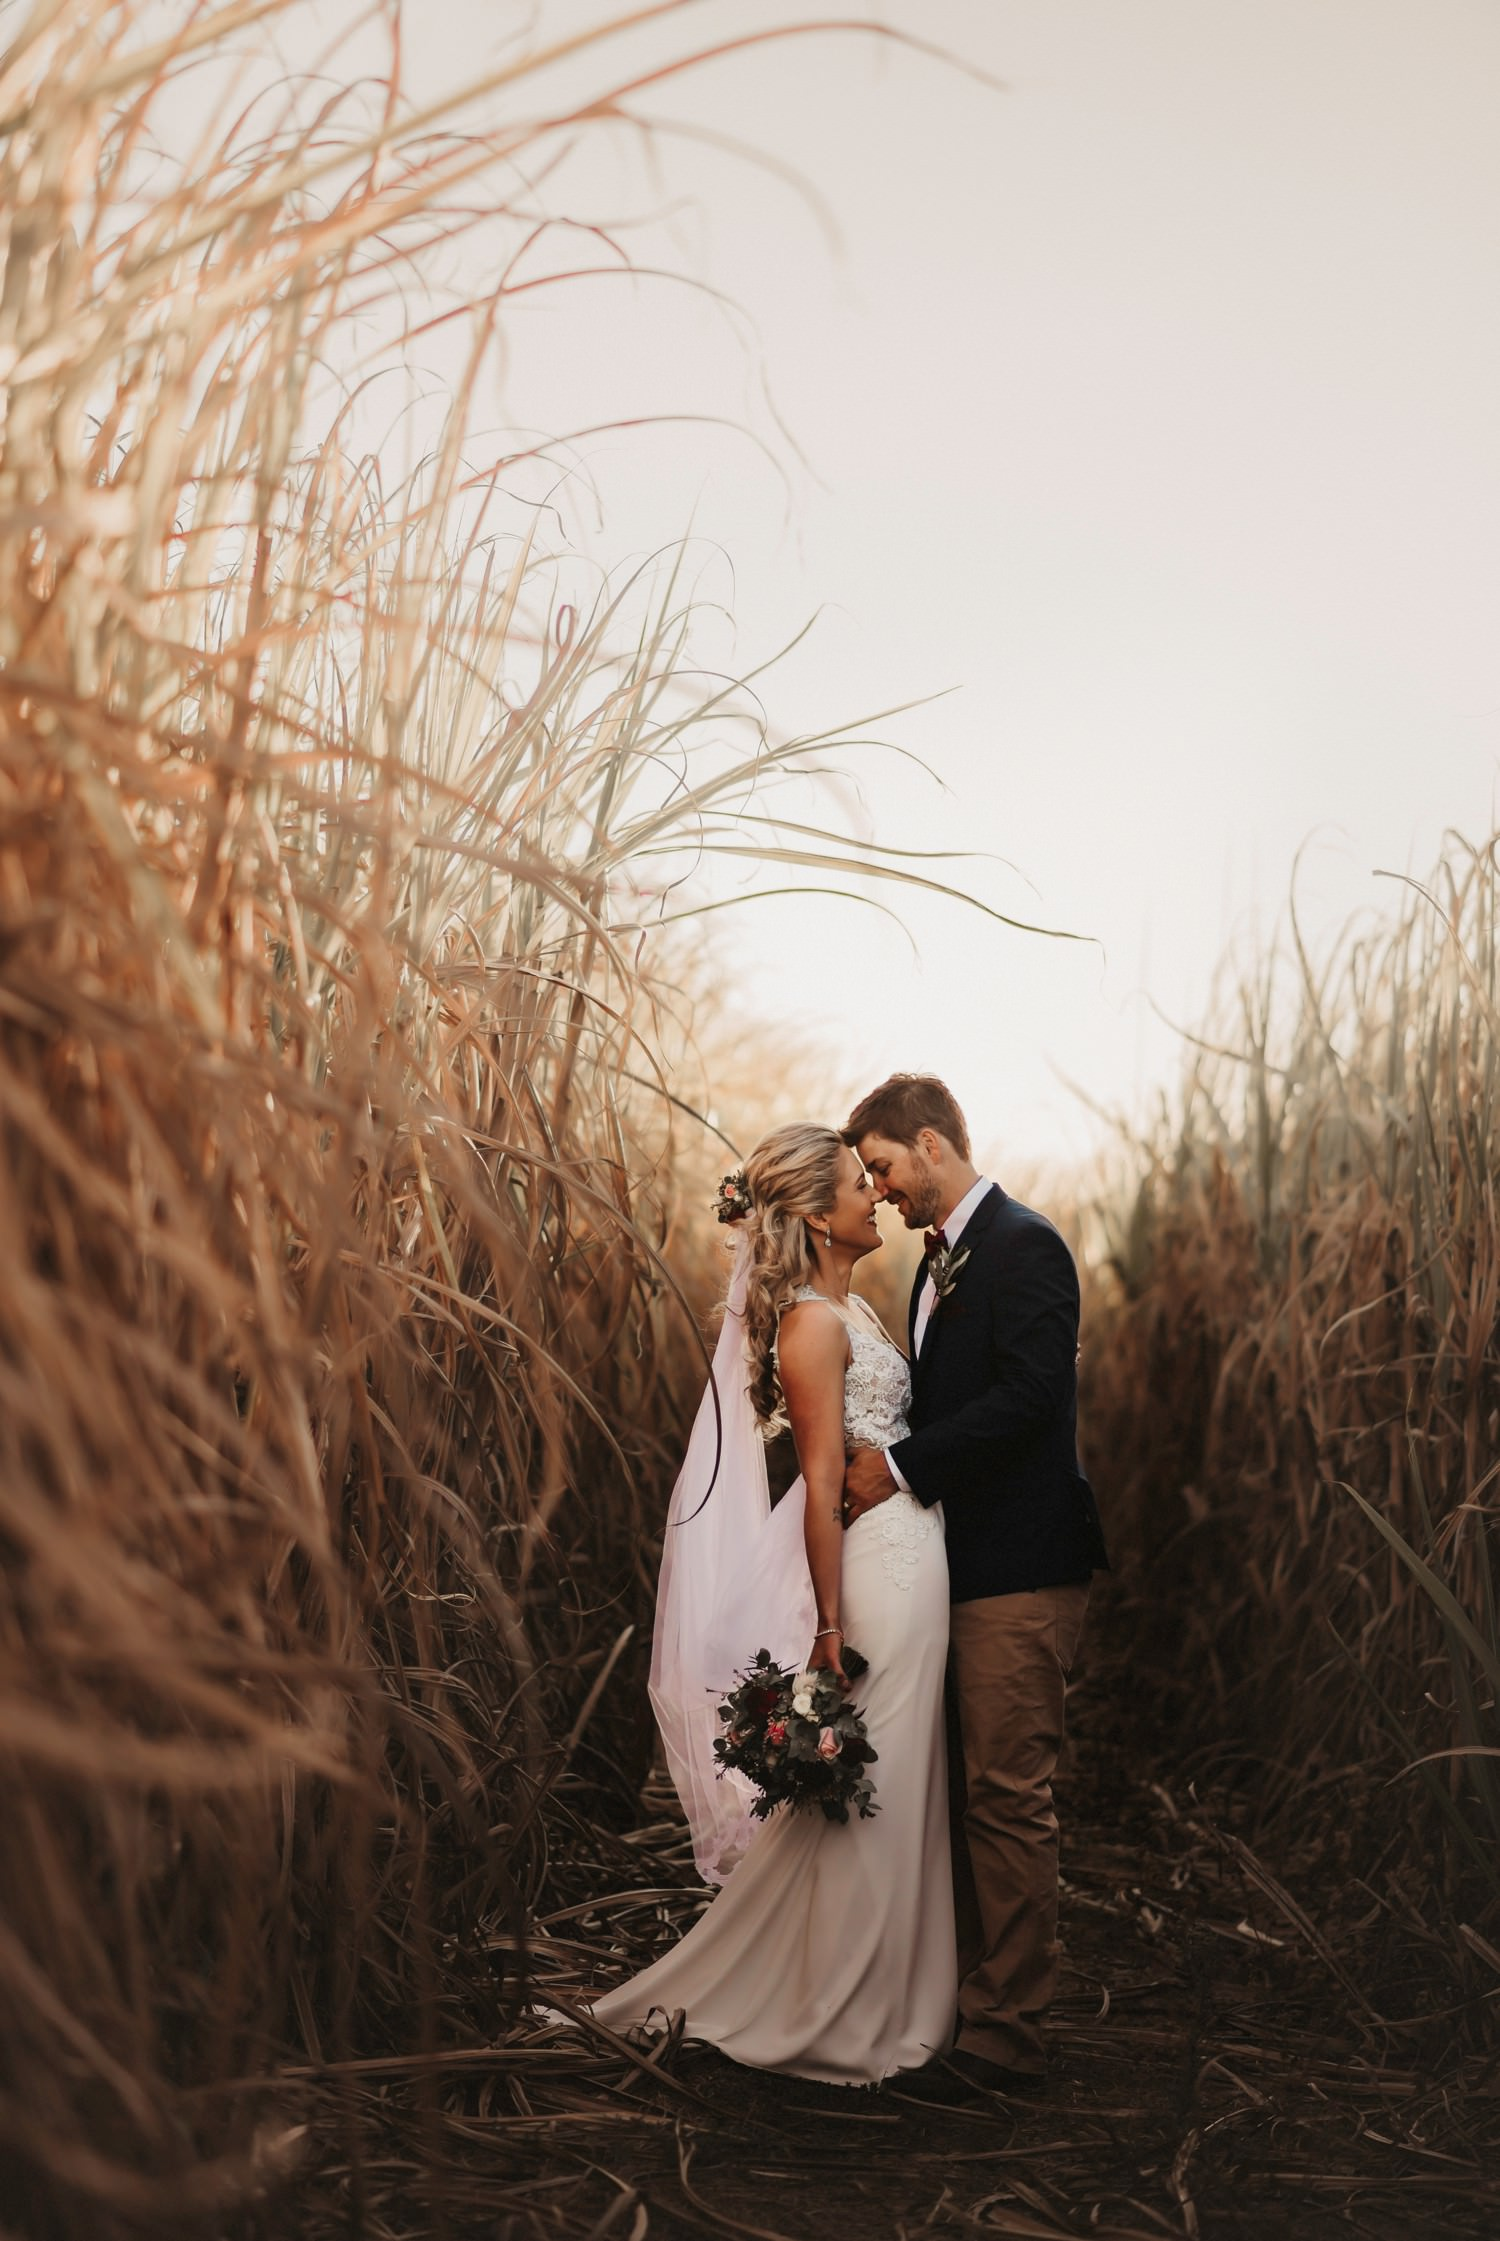 Bride and groom standing amongst golden coloured sugar cane.